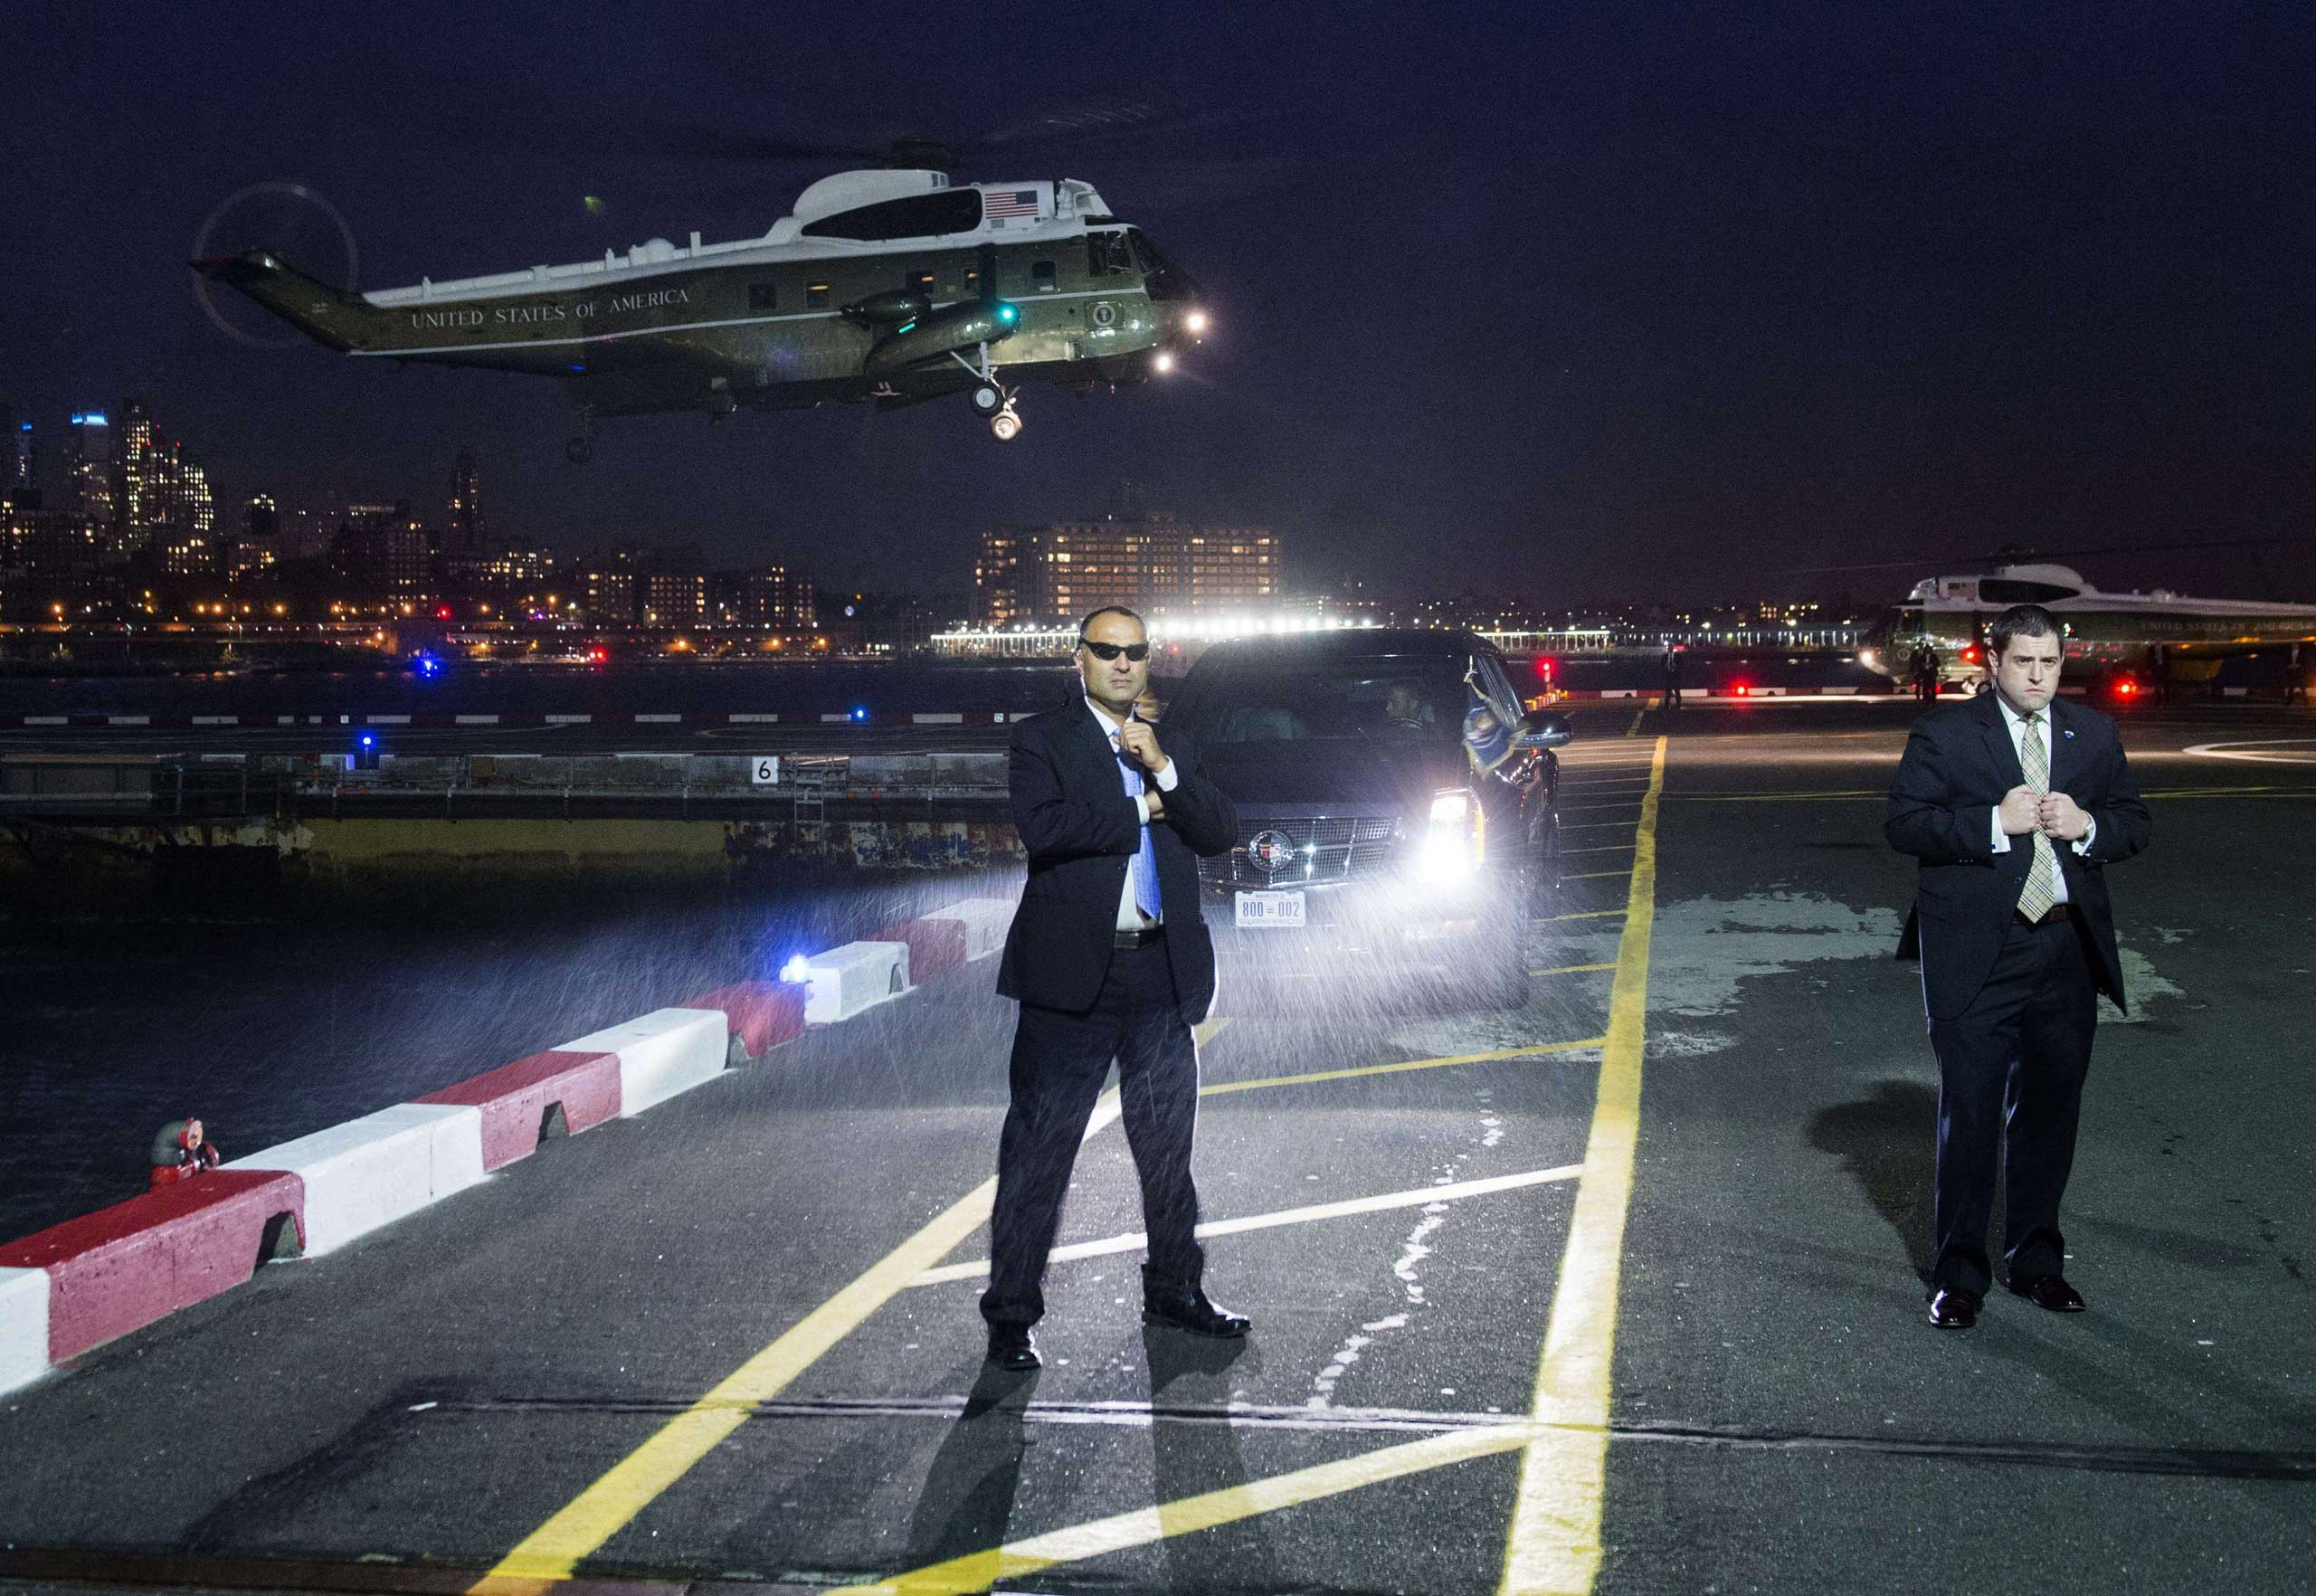 U.S. Secret Service Agents stand guard as Marine One, with U.S. President Barack Obama on board, prepares to land at the Downtown Manhattan Heliport in New York, N.Y. President Obama is traveling to attend Democratic fundraisers. Nov. 2, 2015.